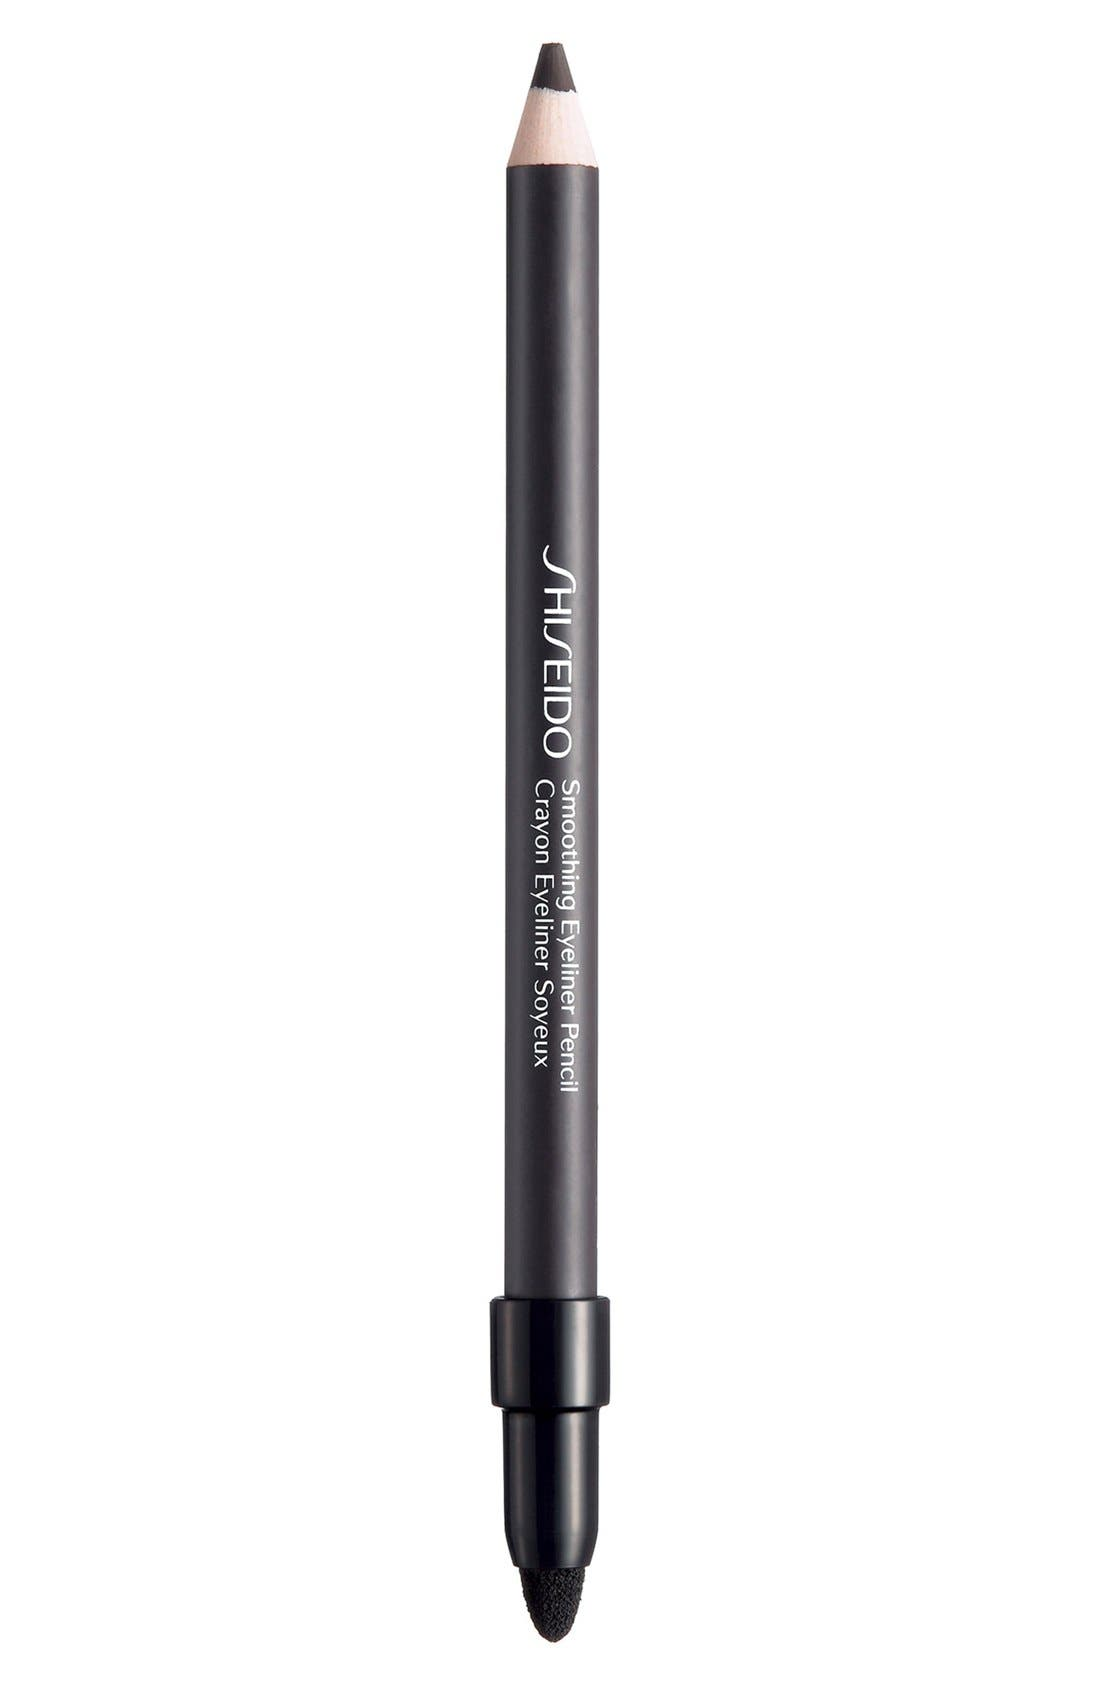 Shiseido 'The Makeup' Smoothing Eyeliner Pencil